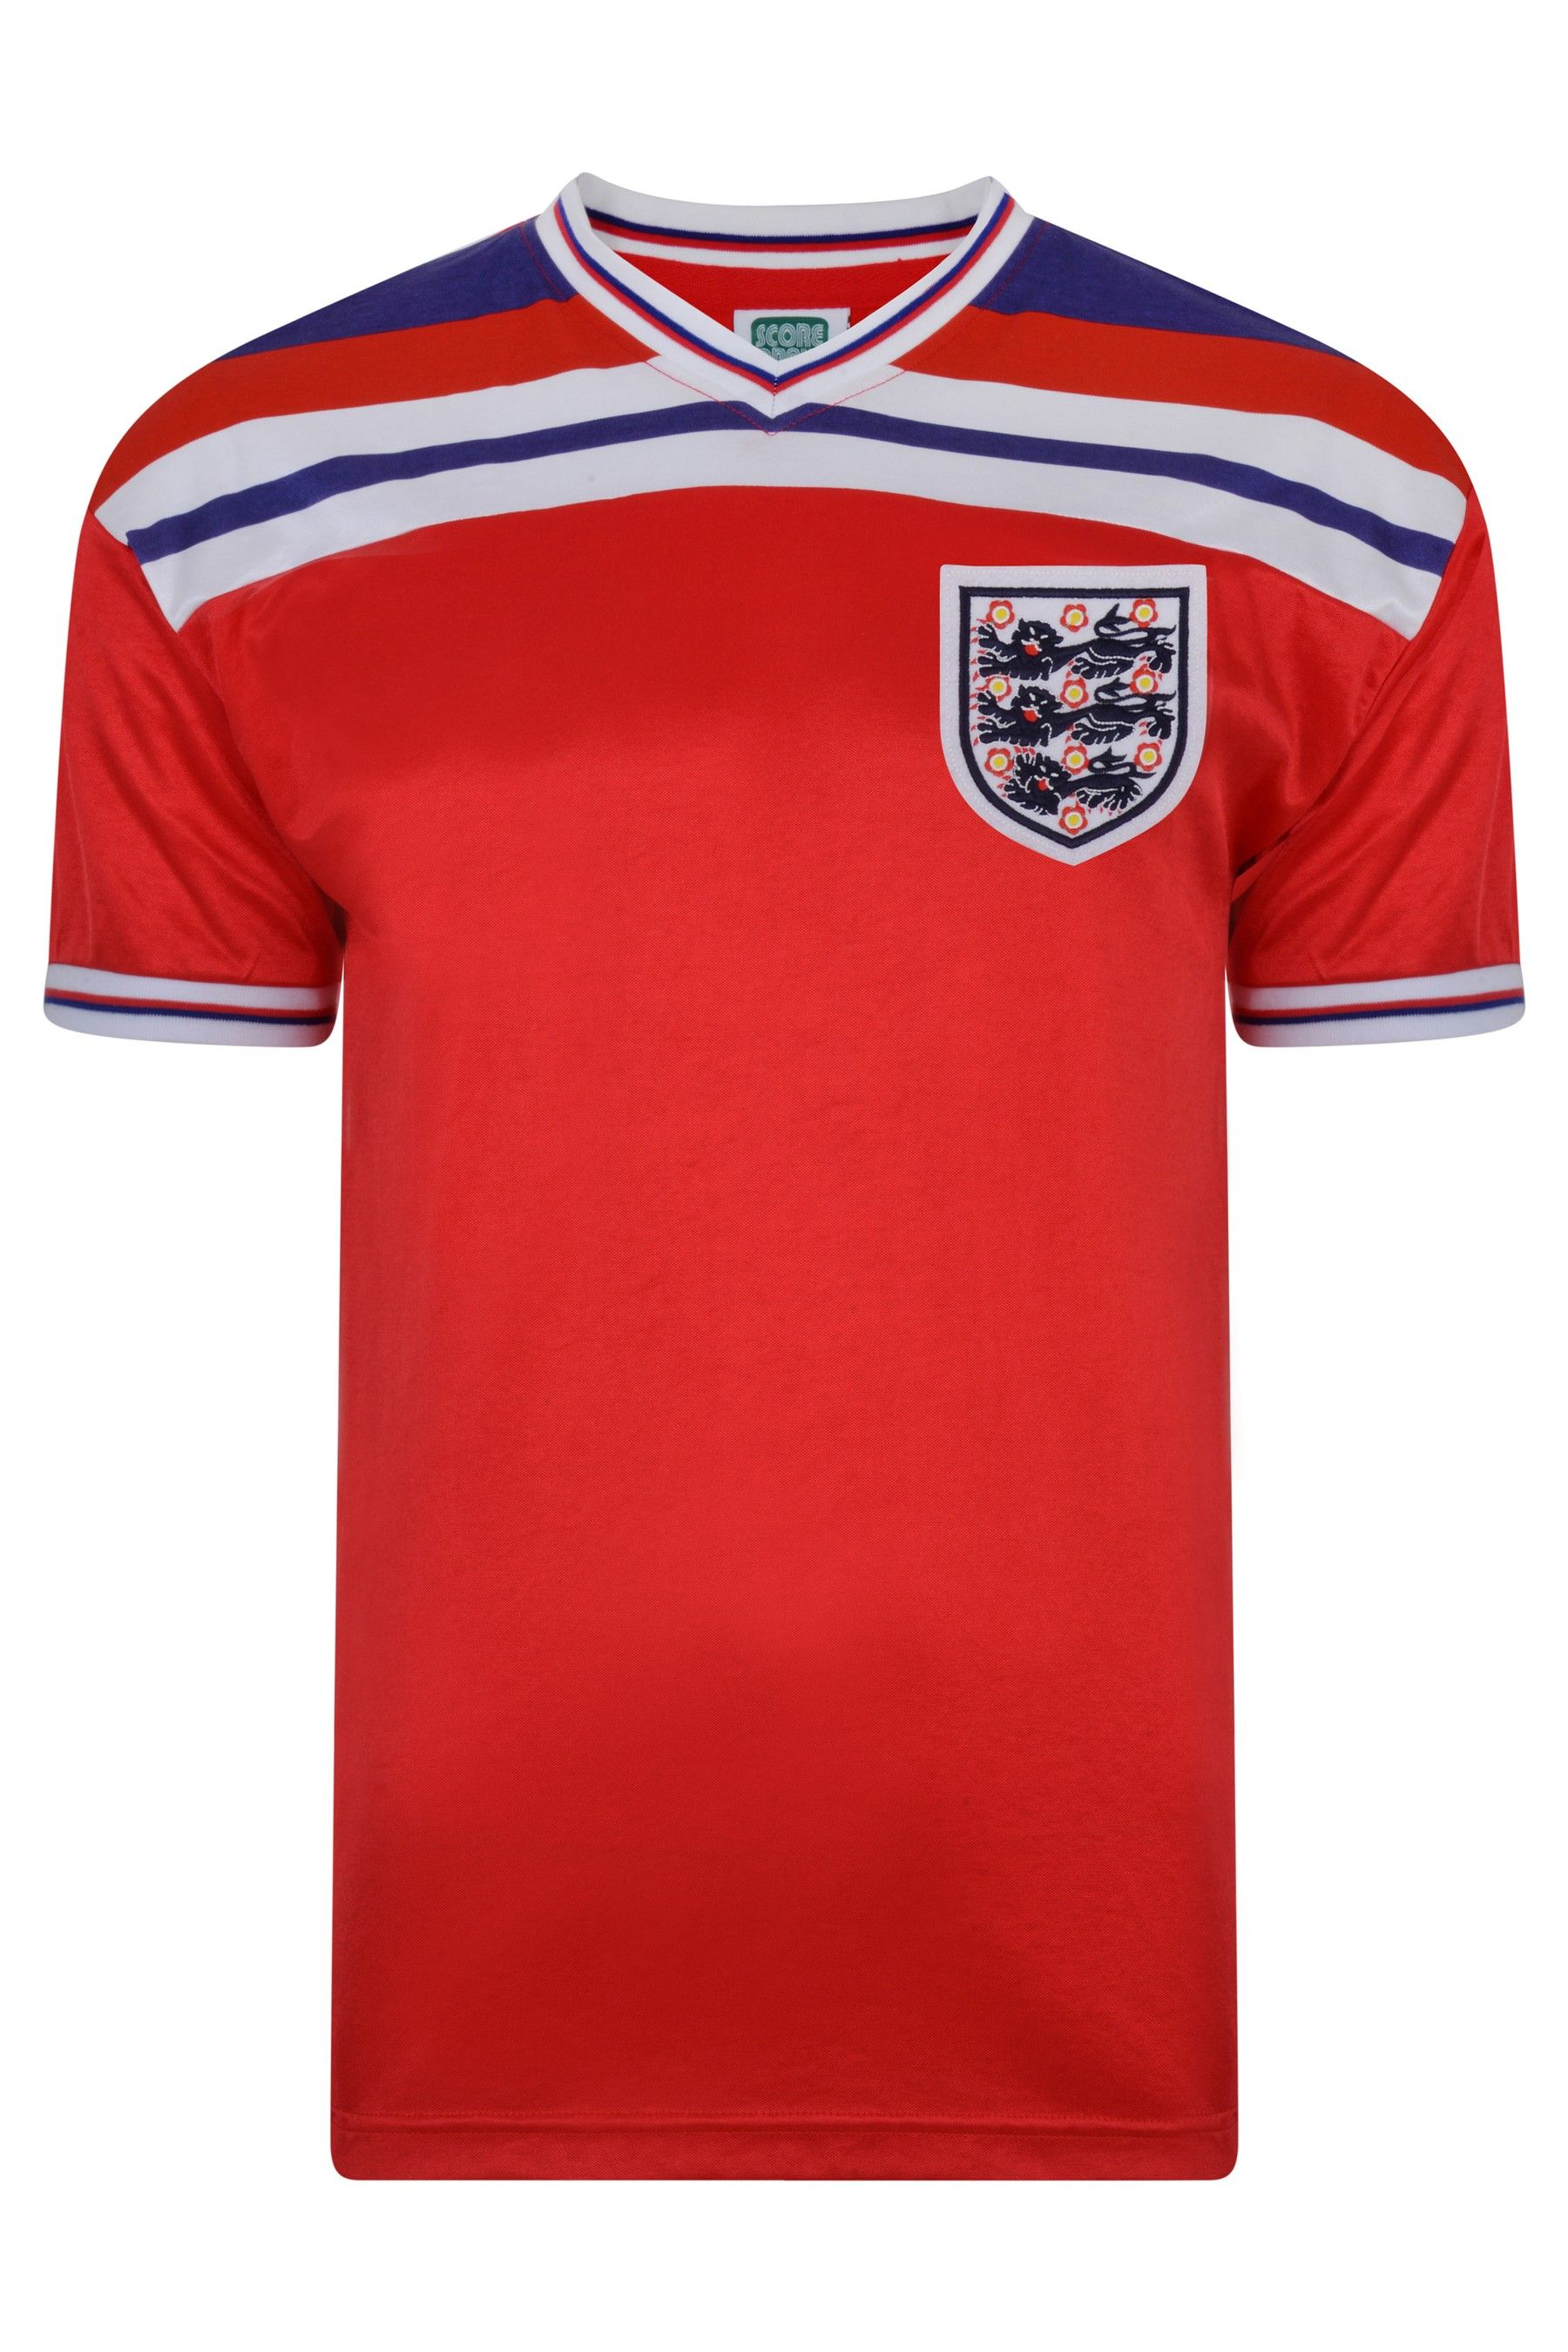 Buy Score Draw England 1982 World Cup Finals Retro Jersey Shirt From The Next Uk Online Shop 1982 World Cup World Cup Final World Cup